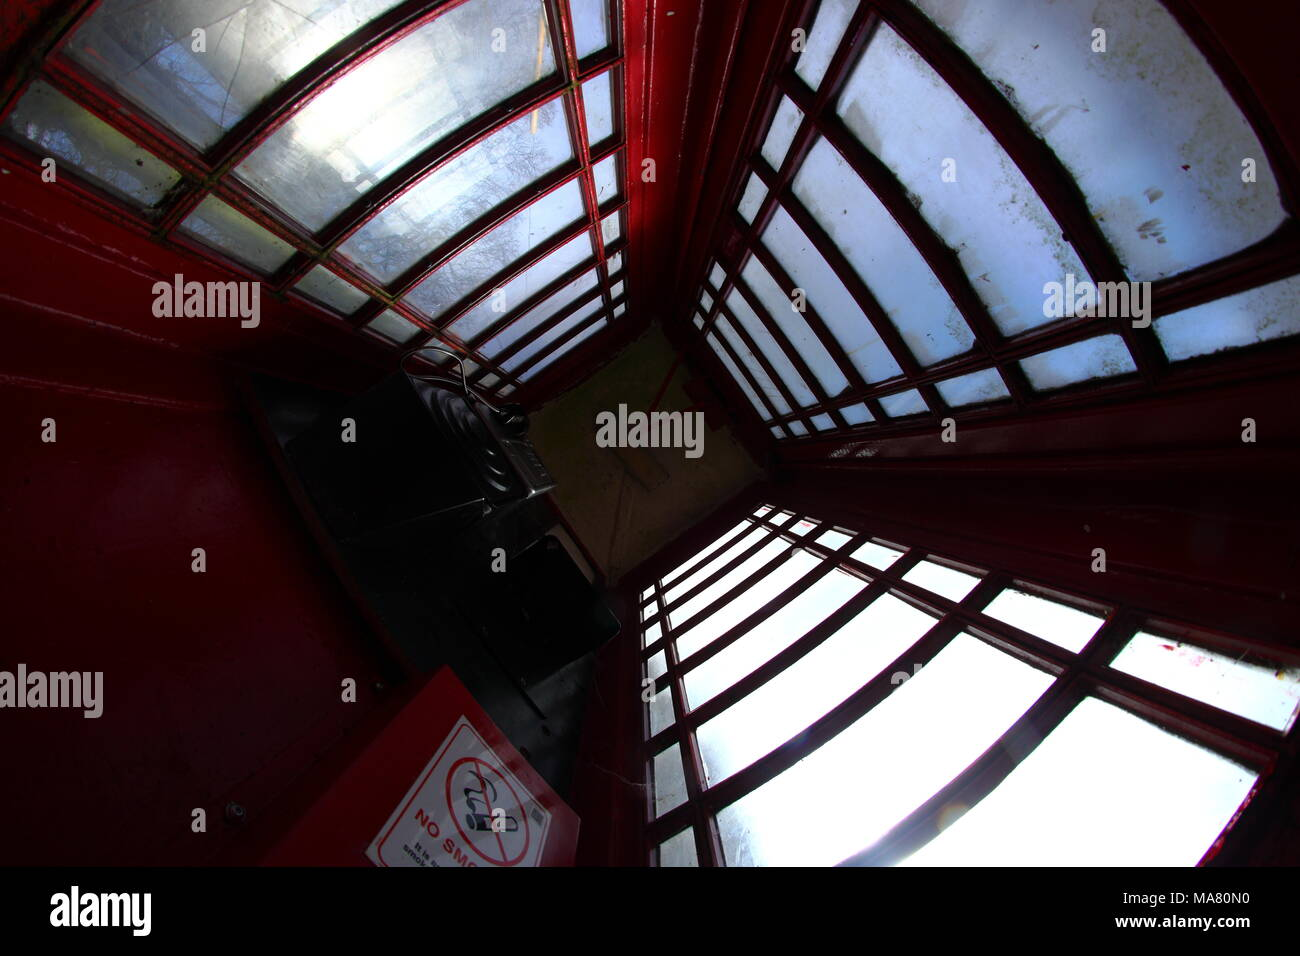 UK Red Telephone Box from the inside looking up - Stock Image